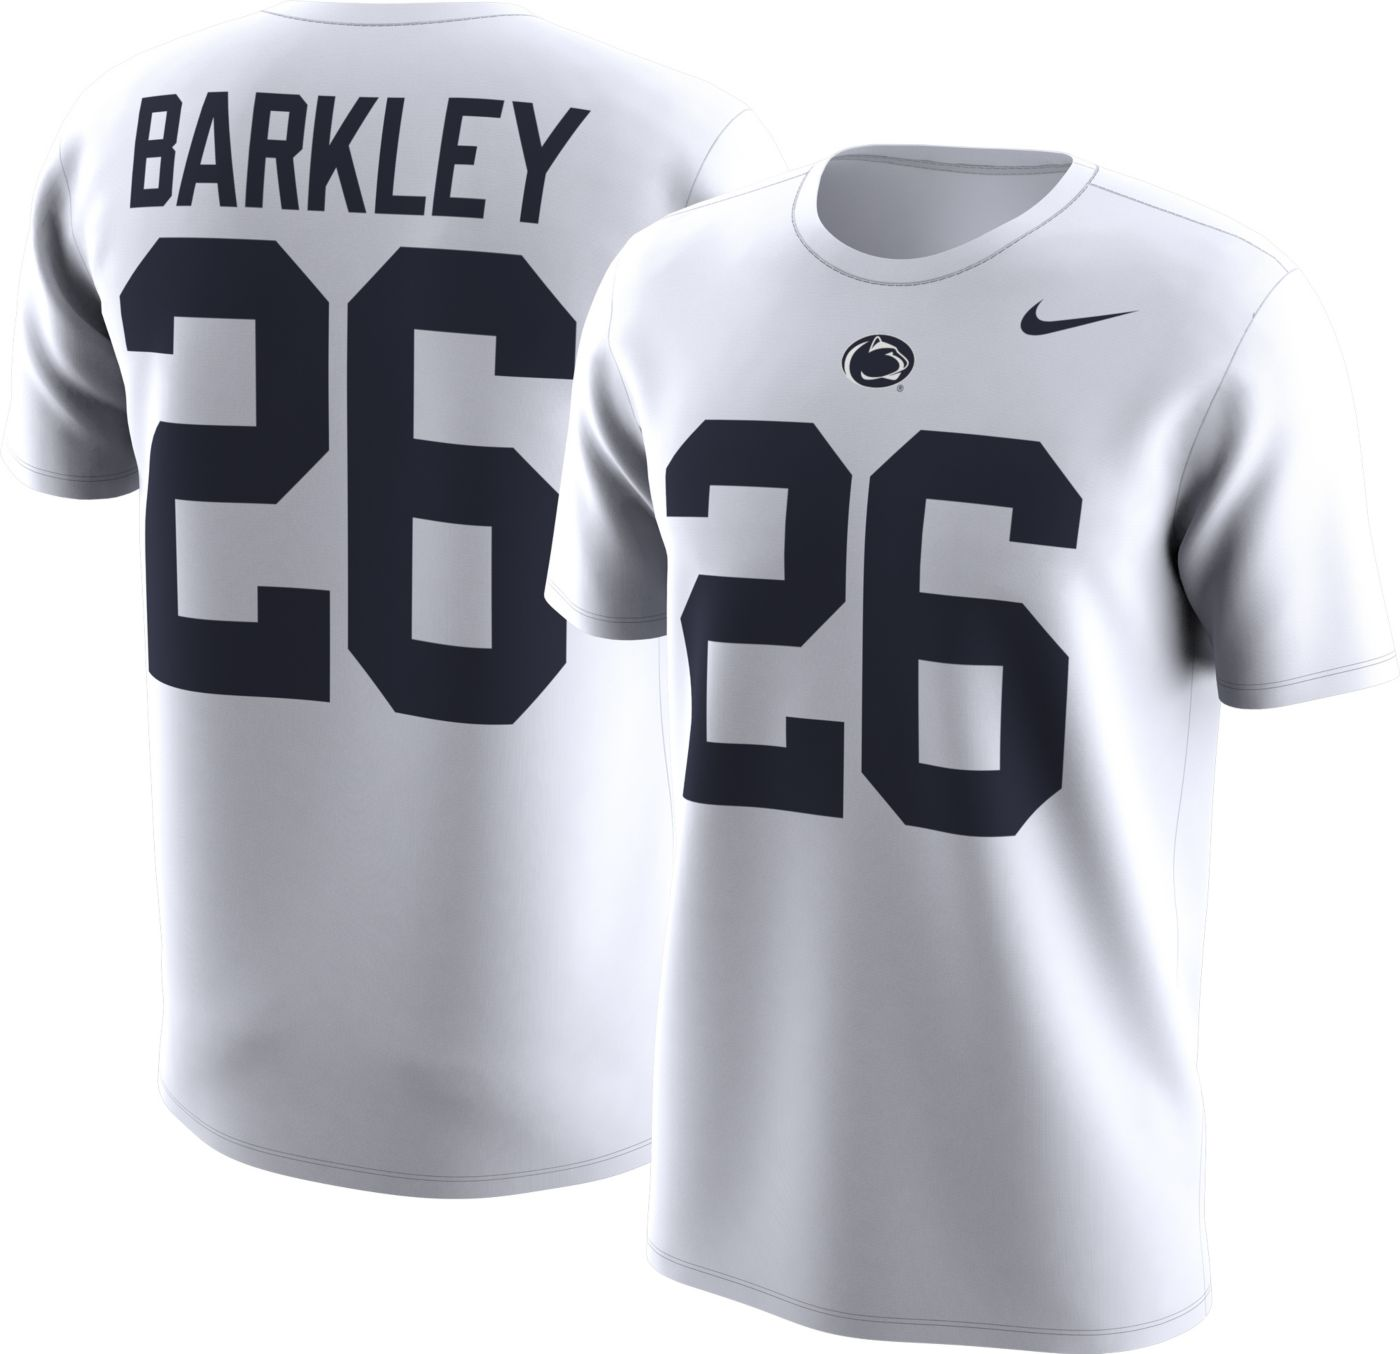 Nike Men's Penn State Nittany Lions Saquon Barkley #26 Football Jersey White T-Shirt